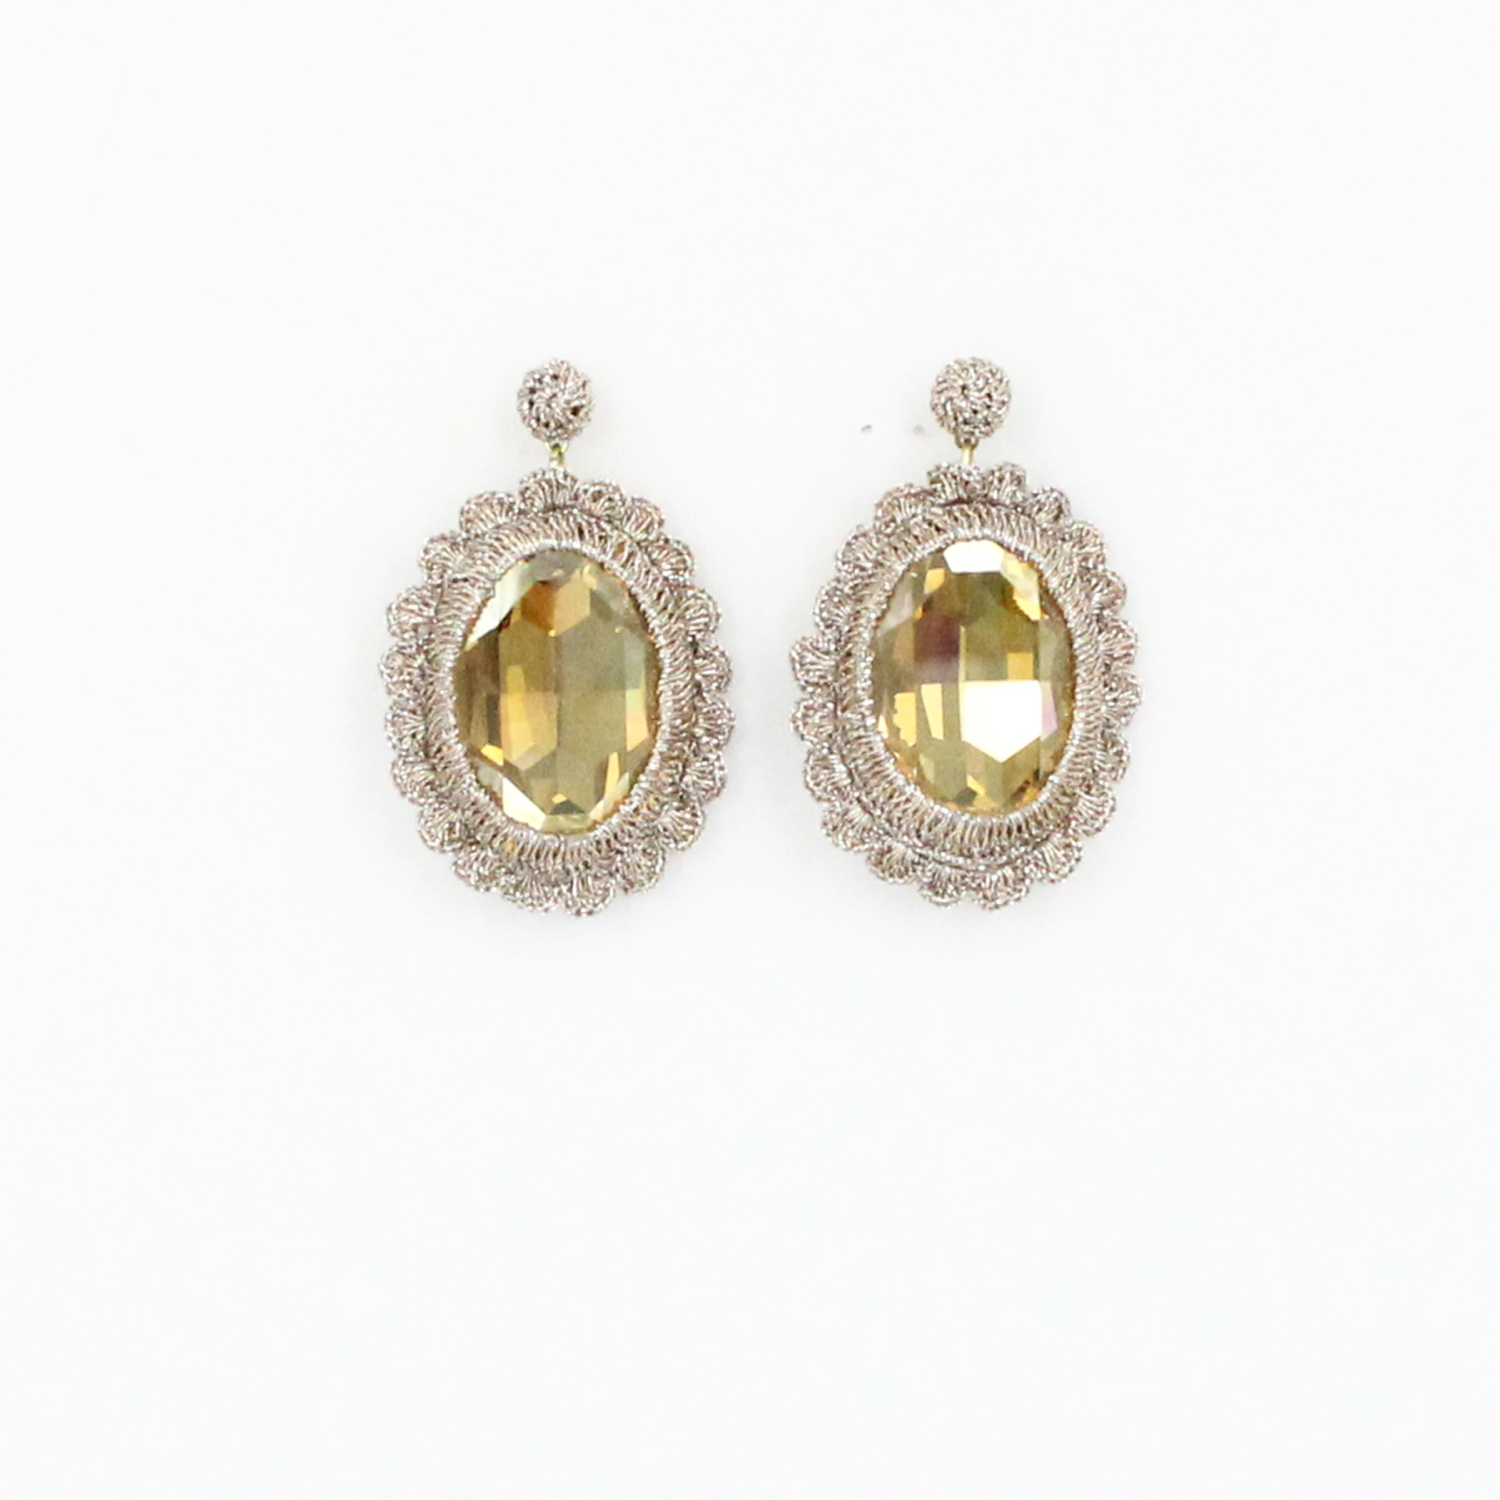 os earrings clique set color size gem french product wire